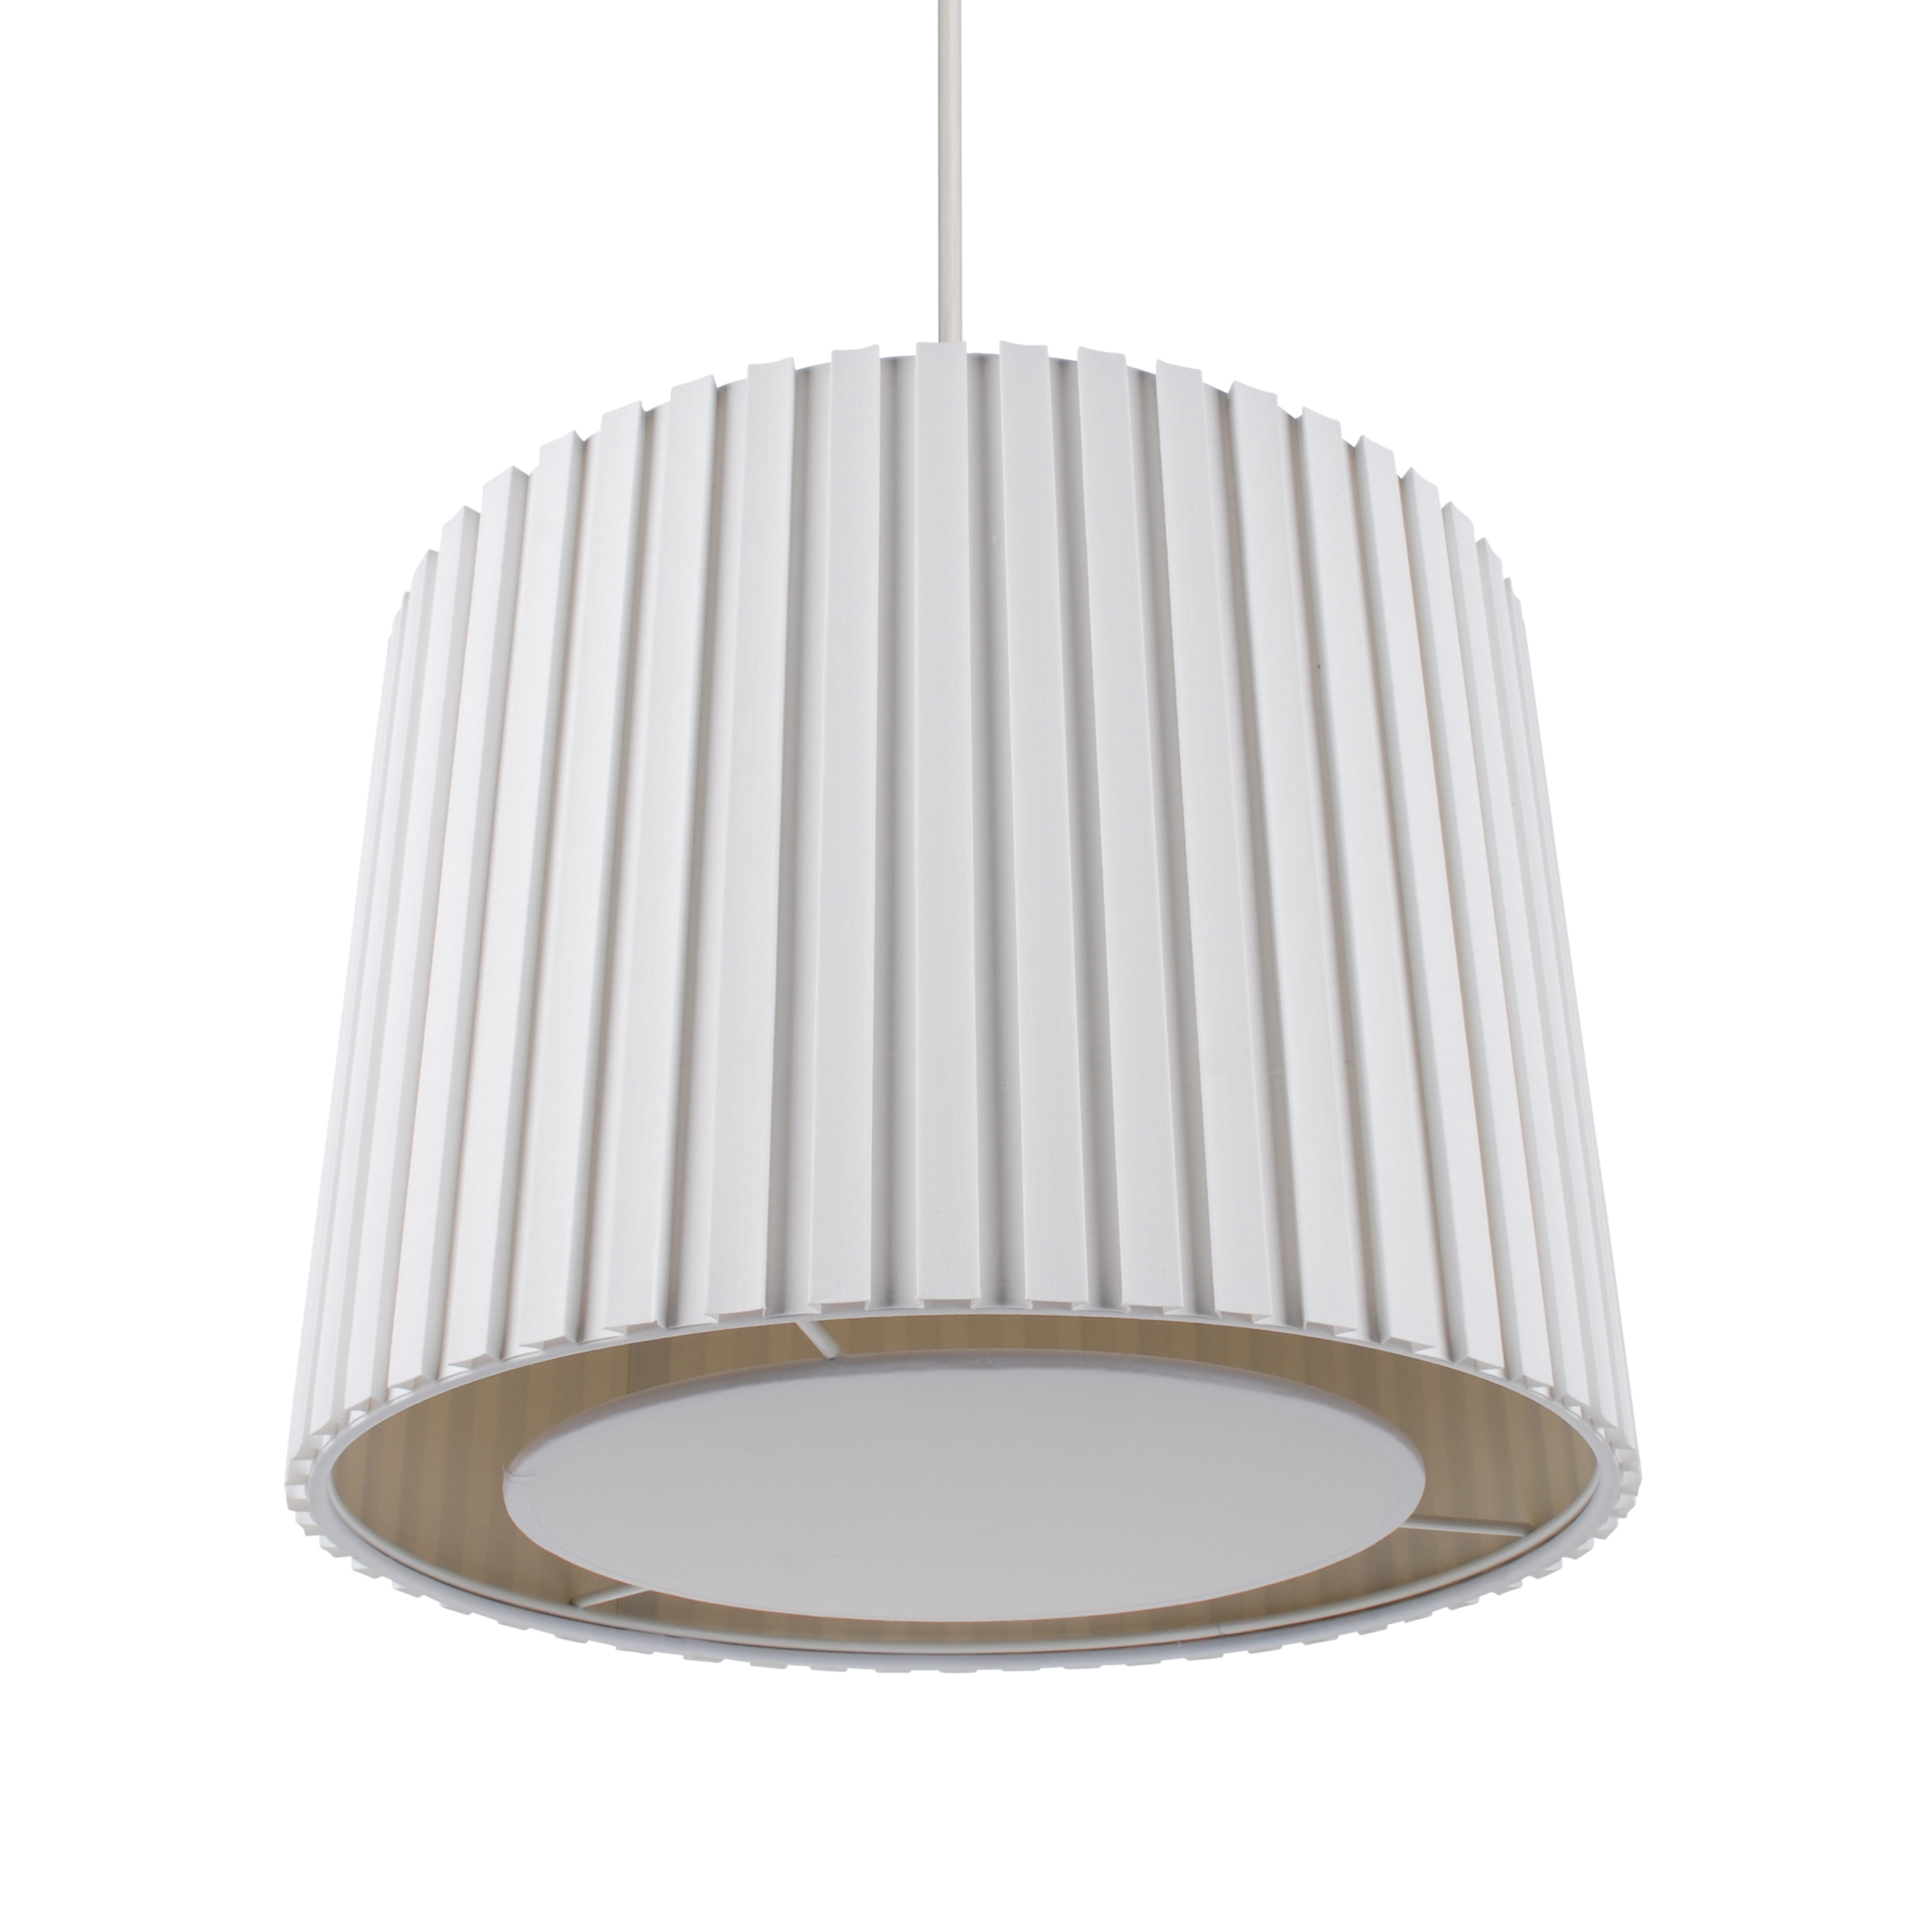 Cream 350mm Pleated Non Electric Lamp Shade Ceiling Light